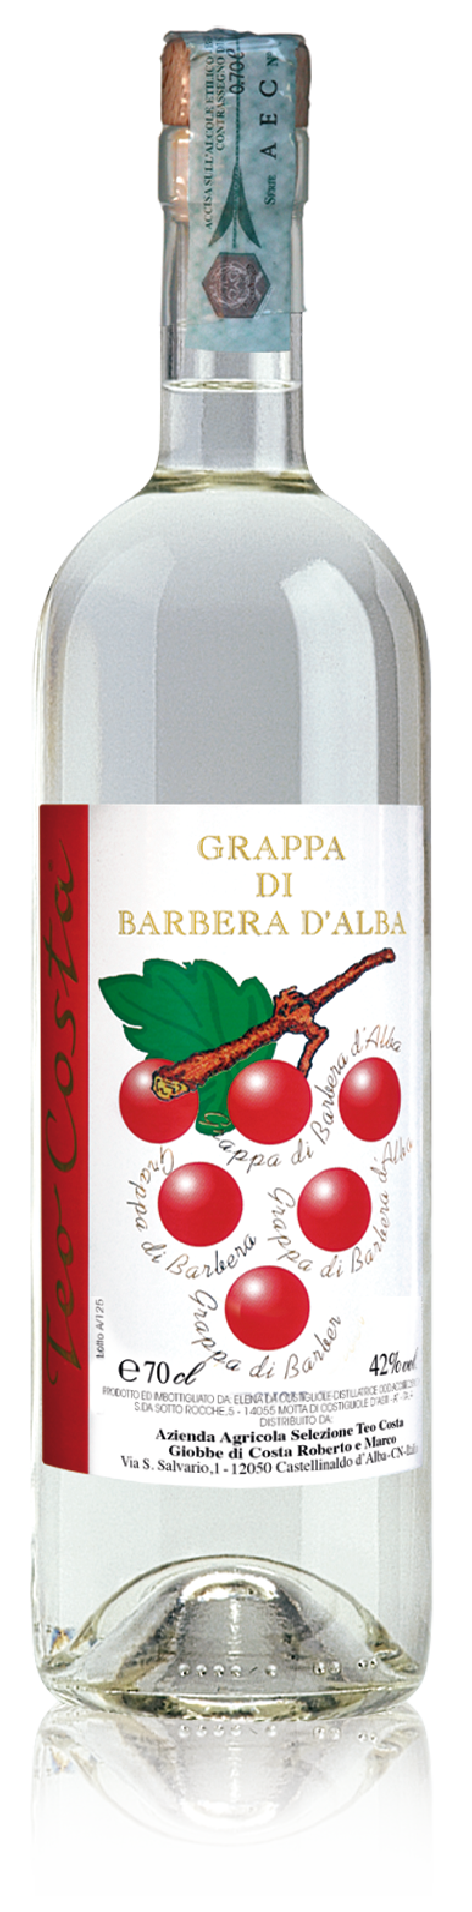 Teo Costa - Grappa Barbera